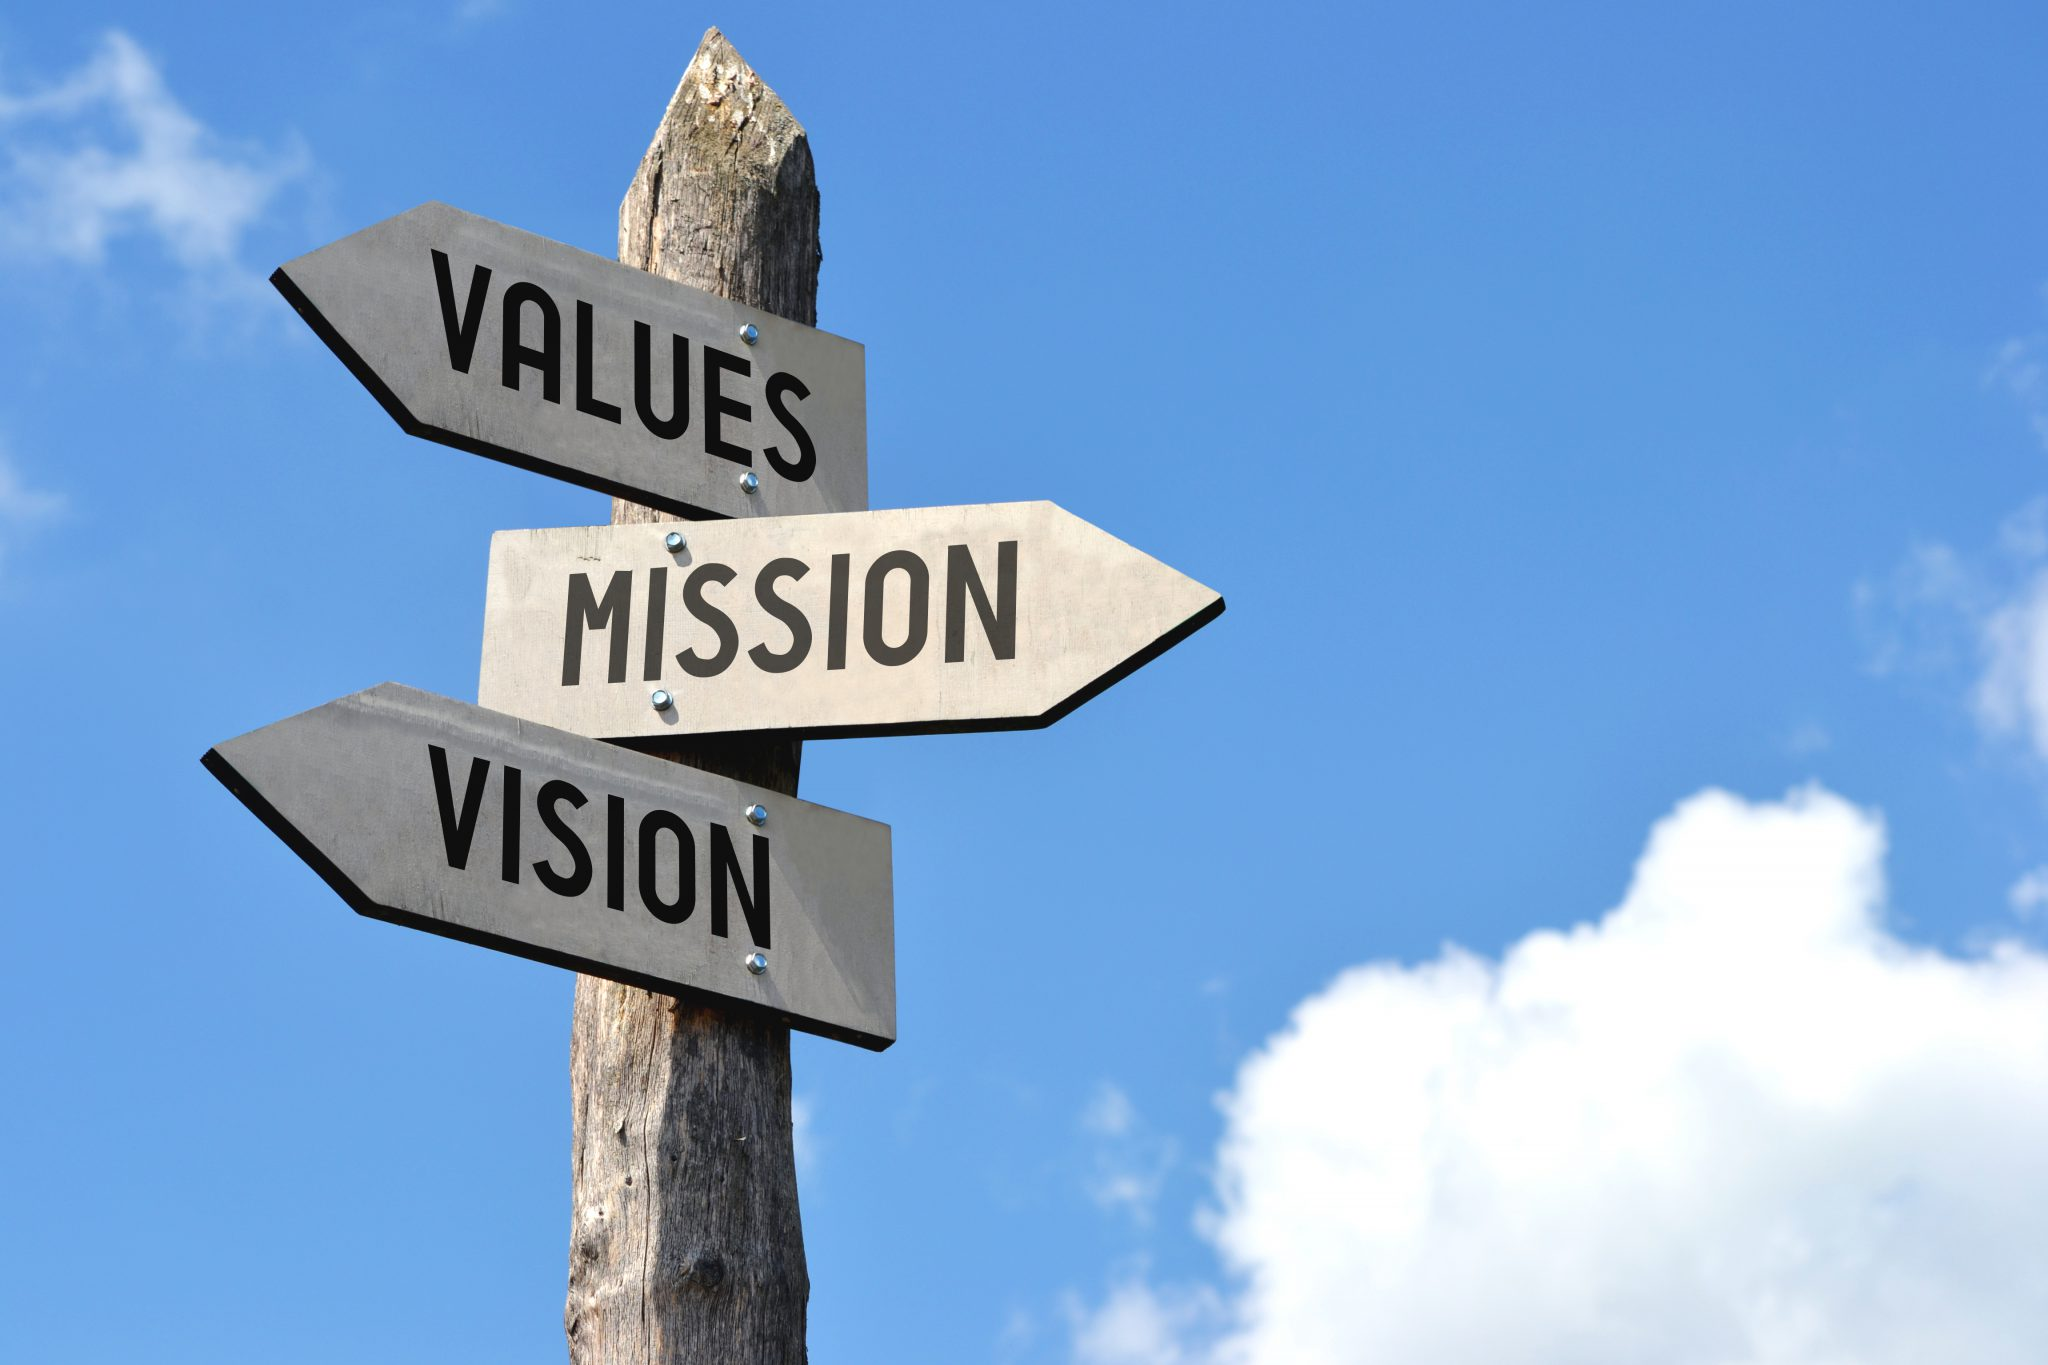 Values, Mission, Vision